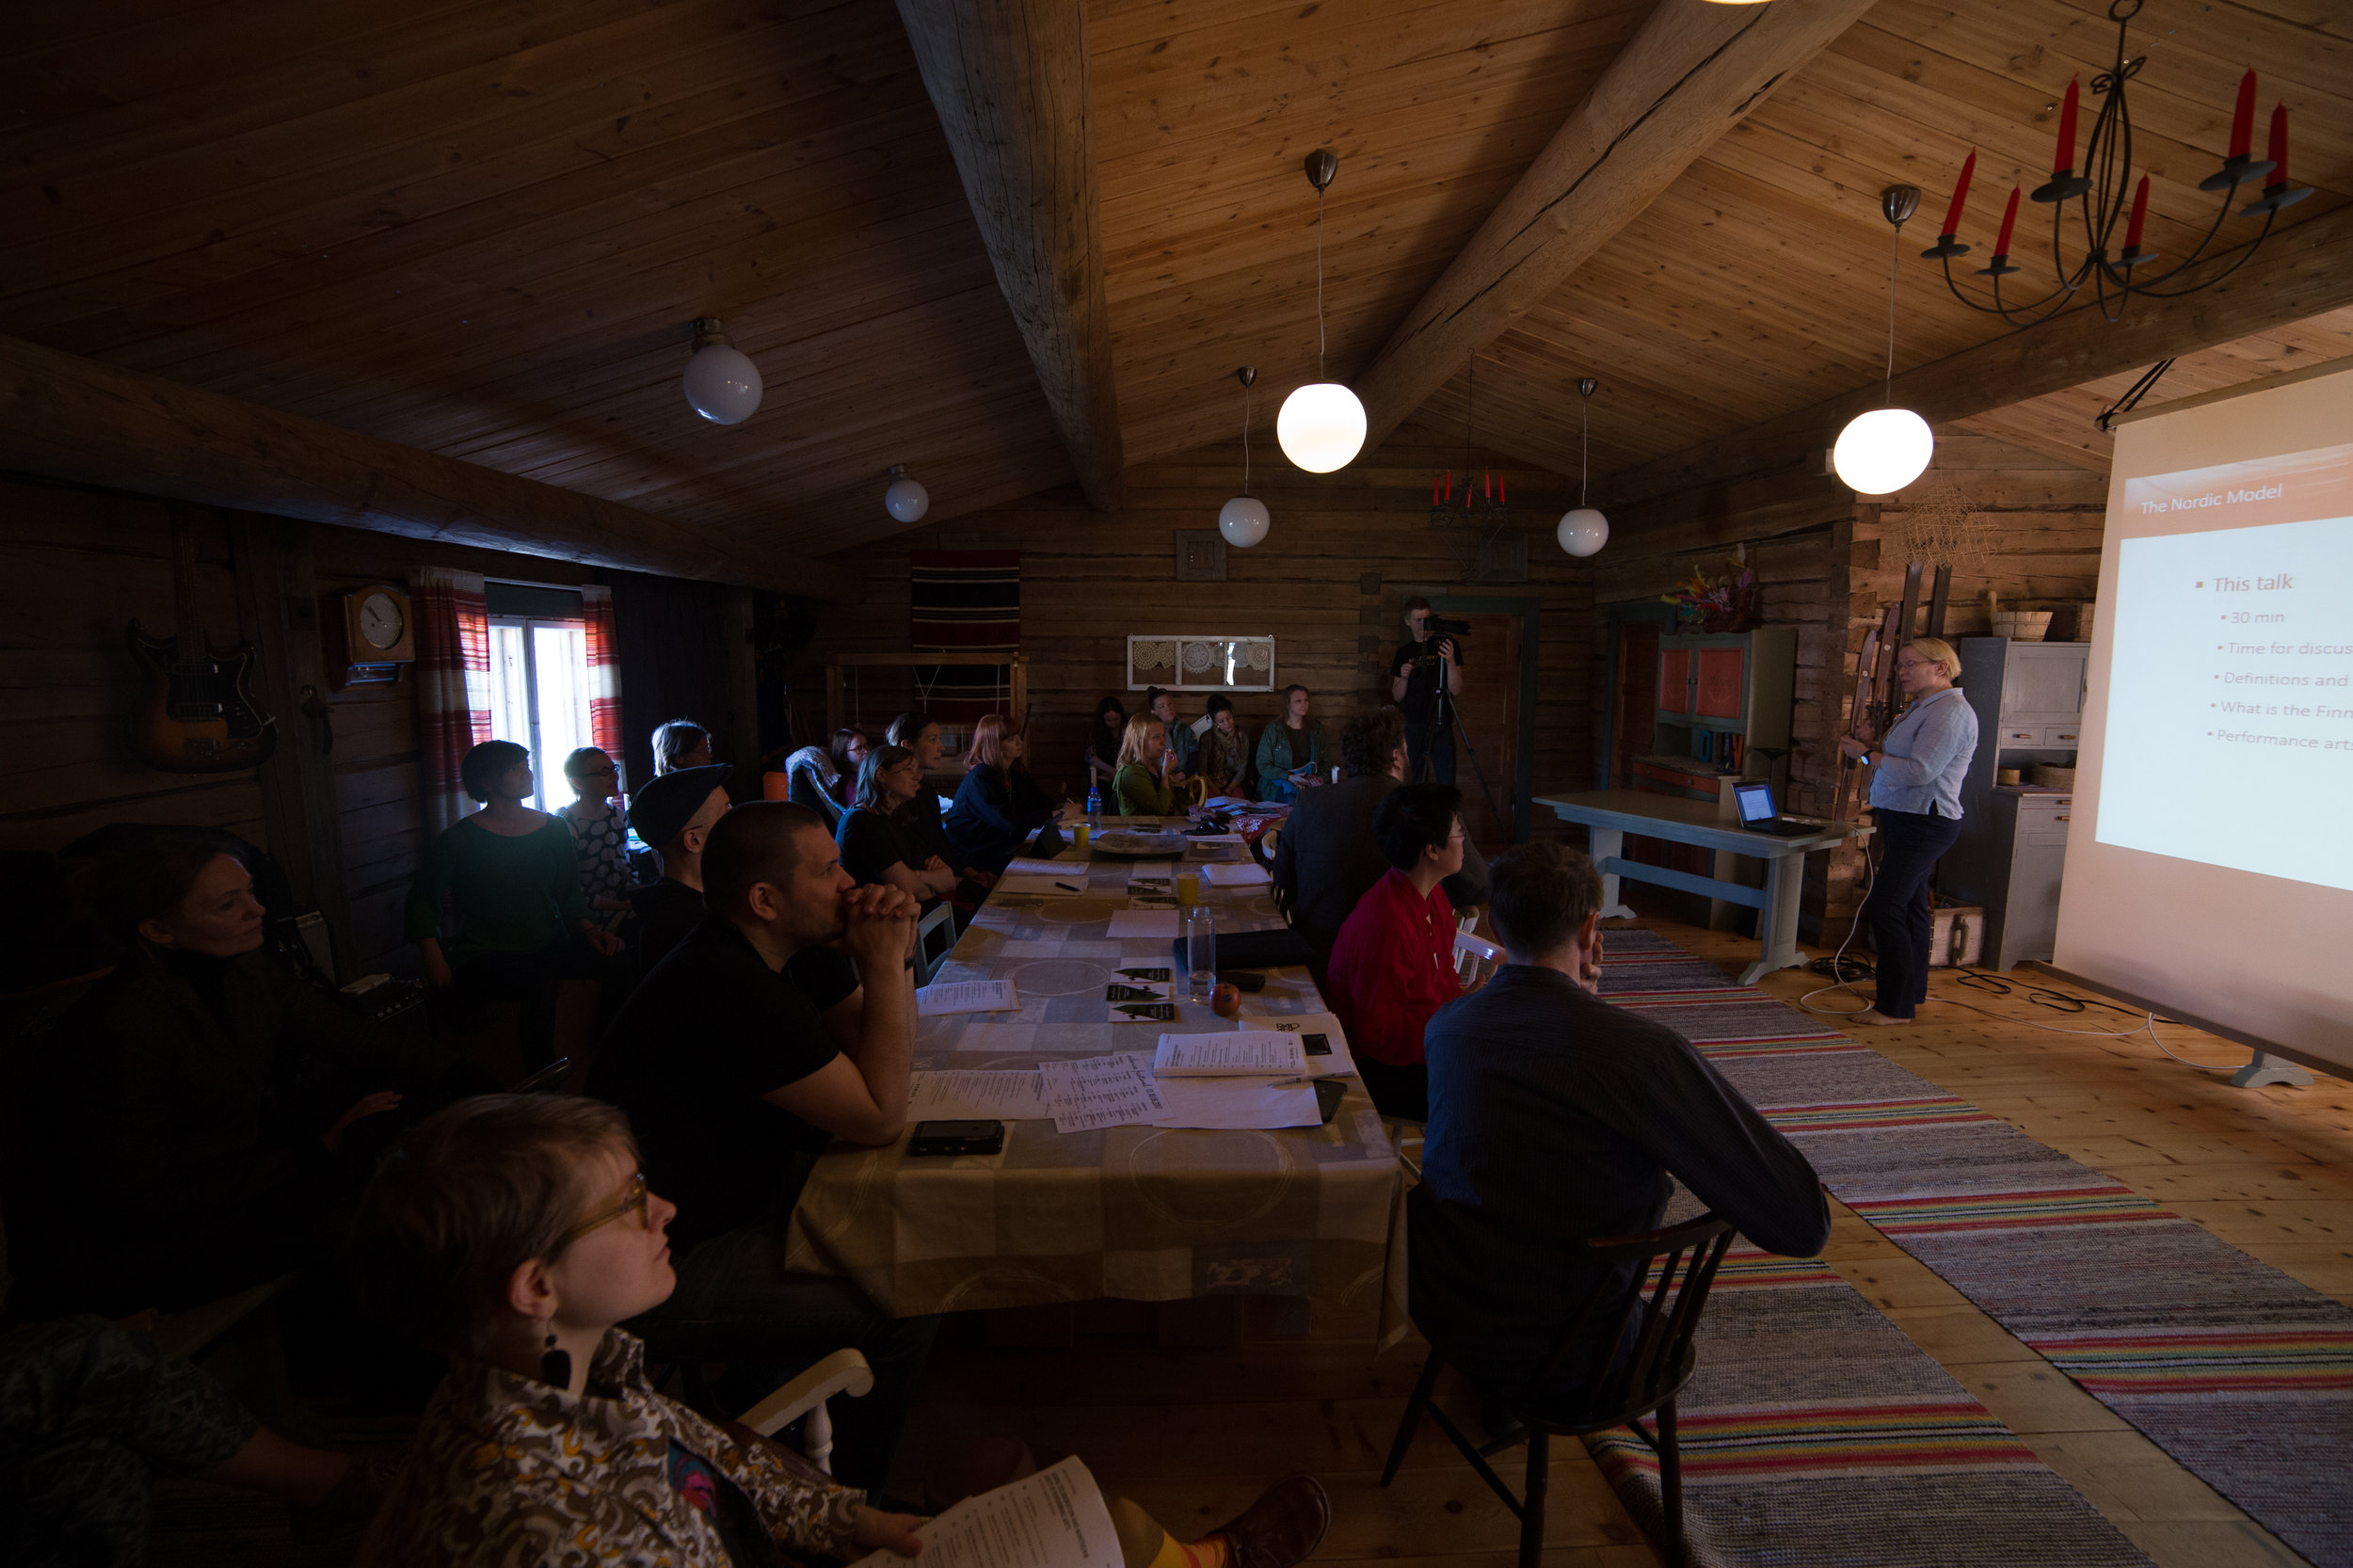 Seminar at Mummola Travels, Photo by Jouni Ihalainen